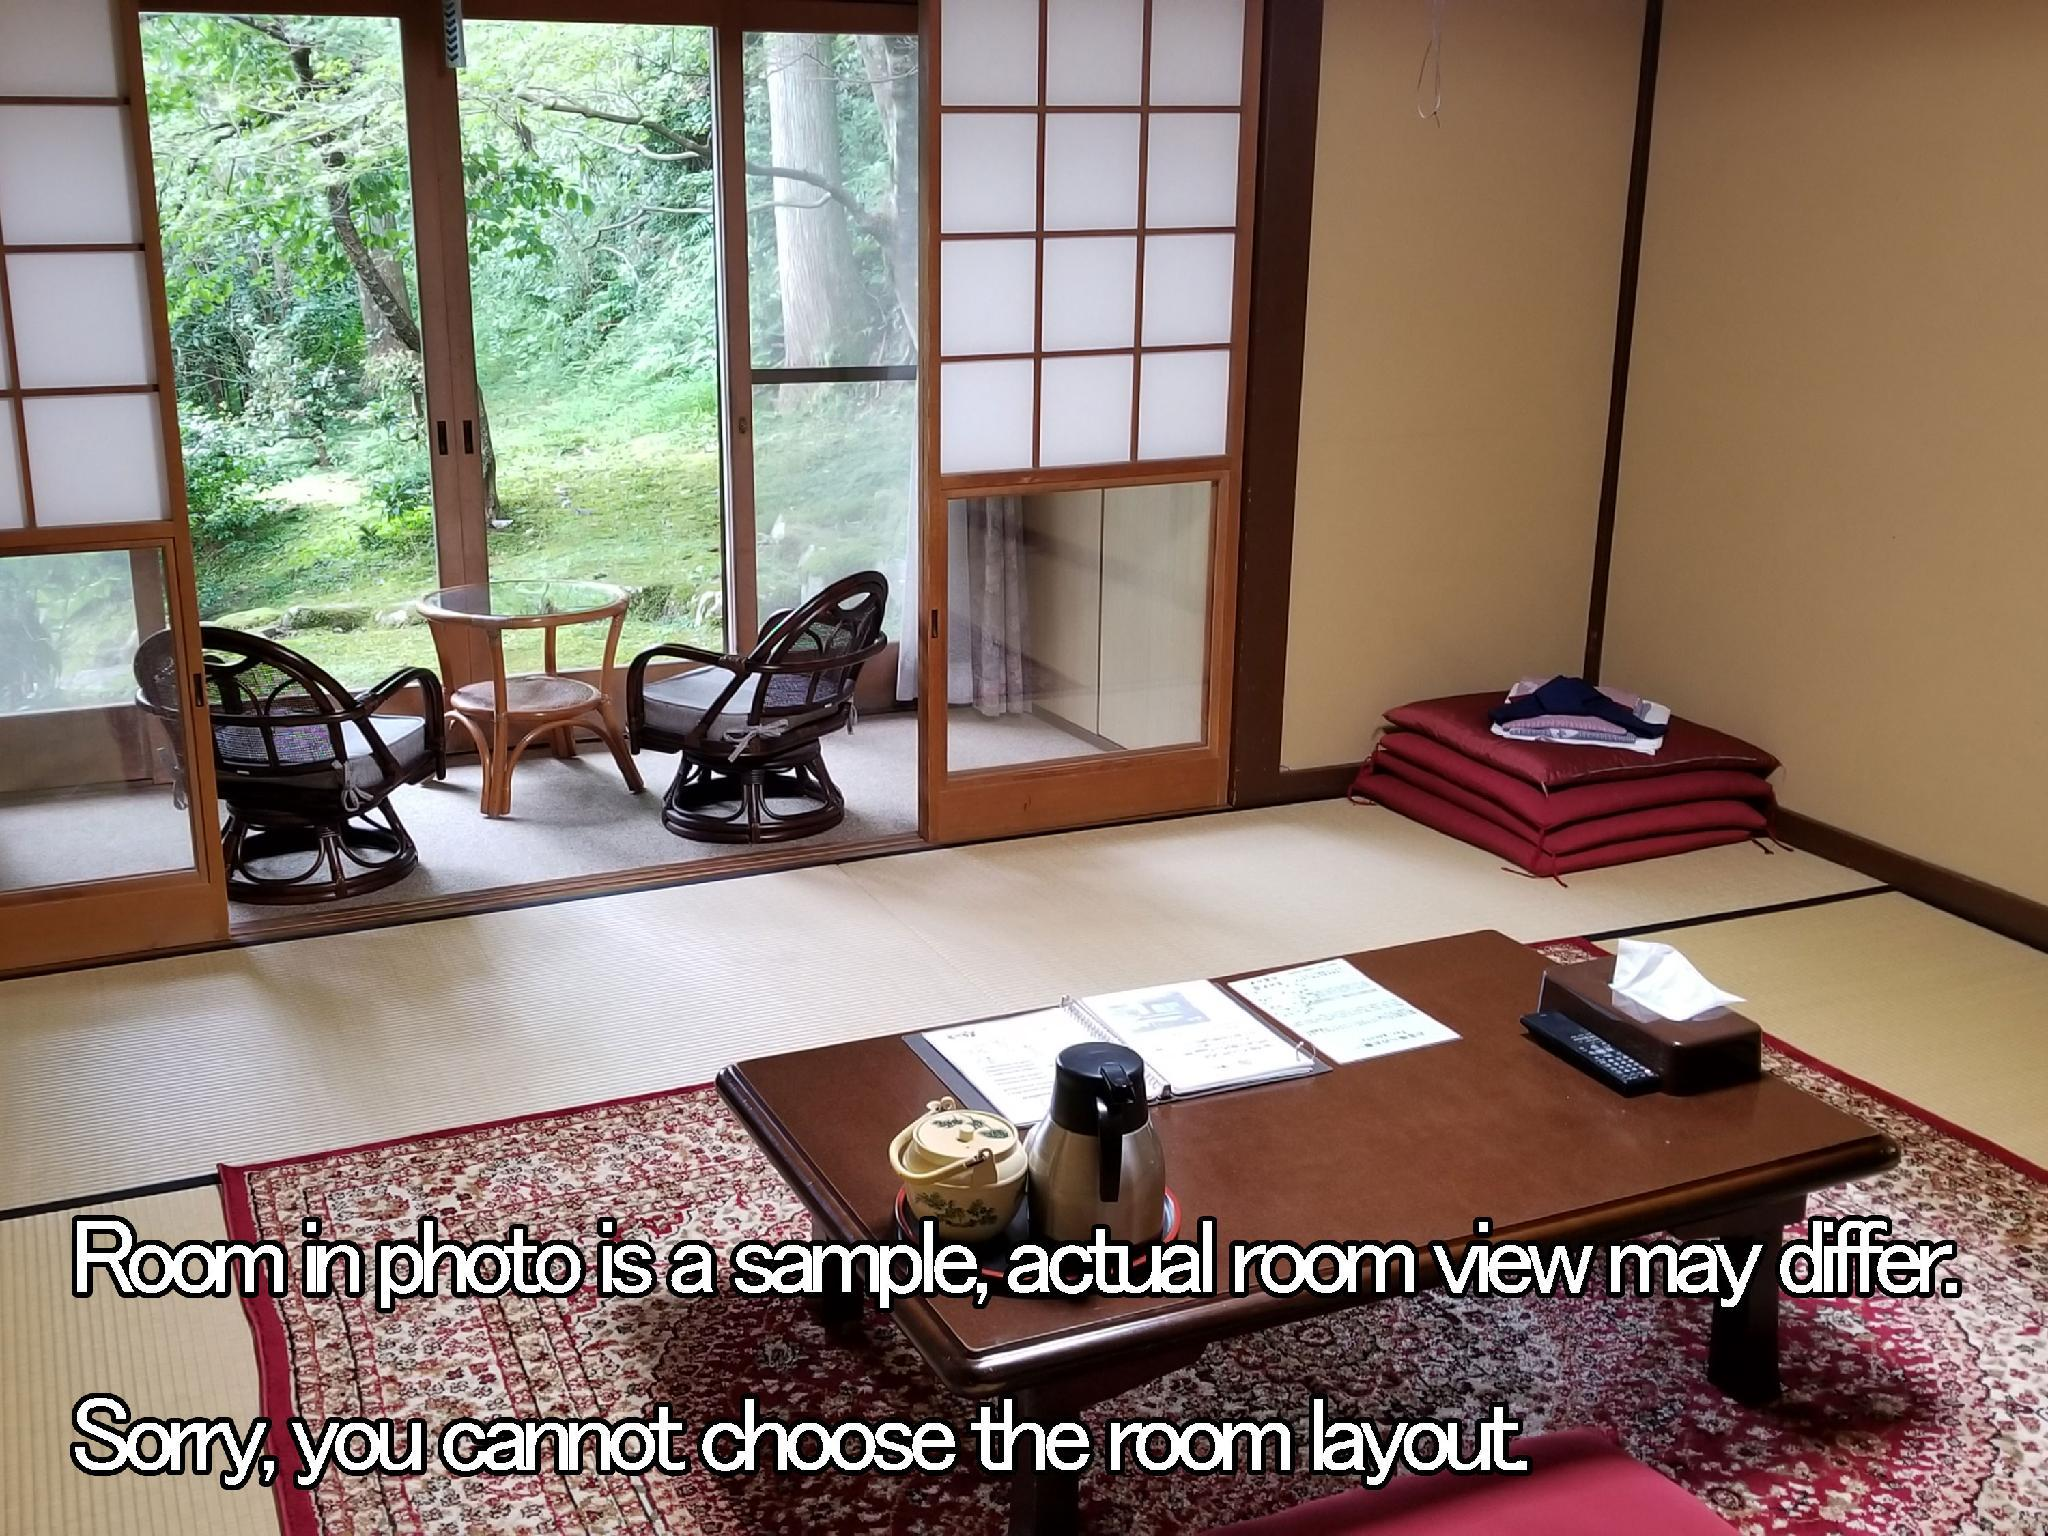 和室(部屋のみ) (Japanese Style (Room Only))